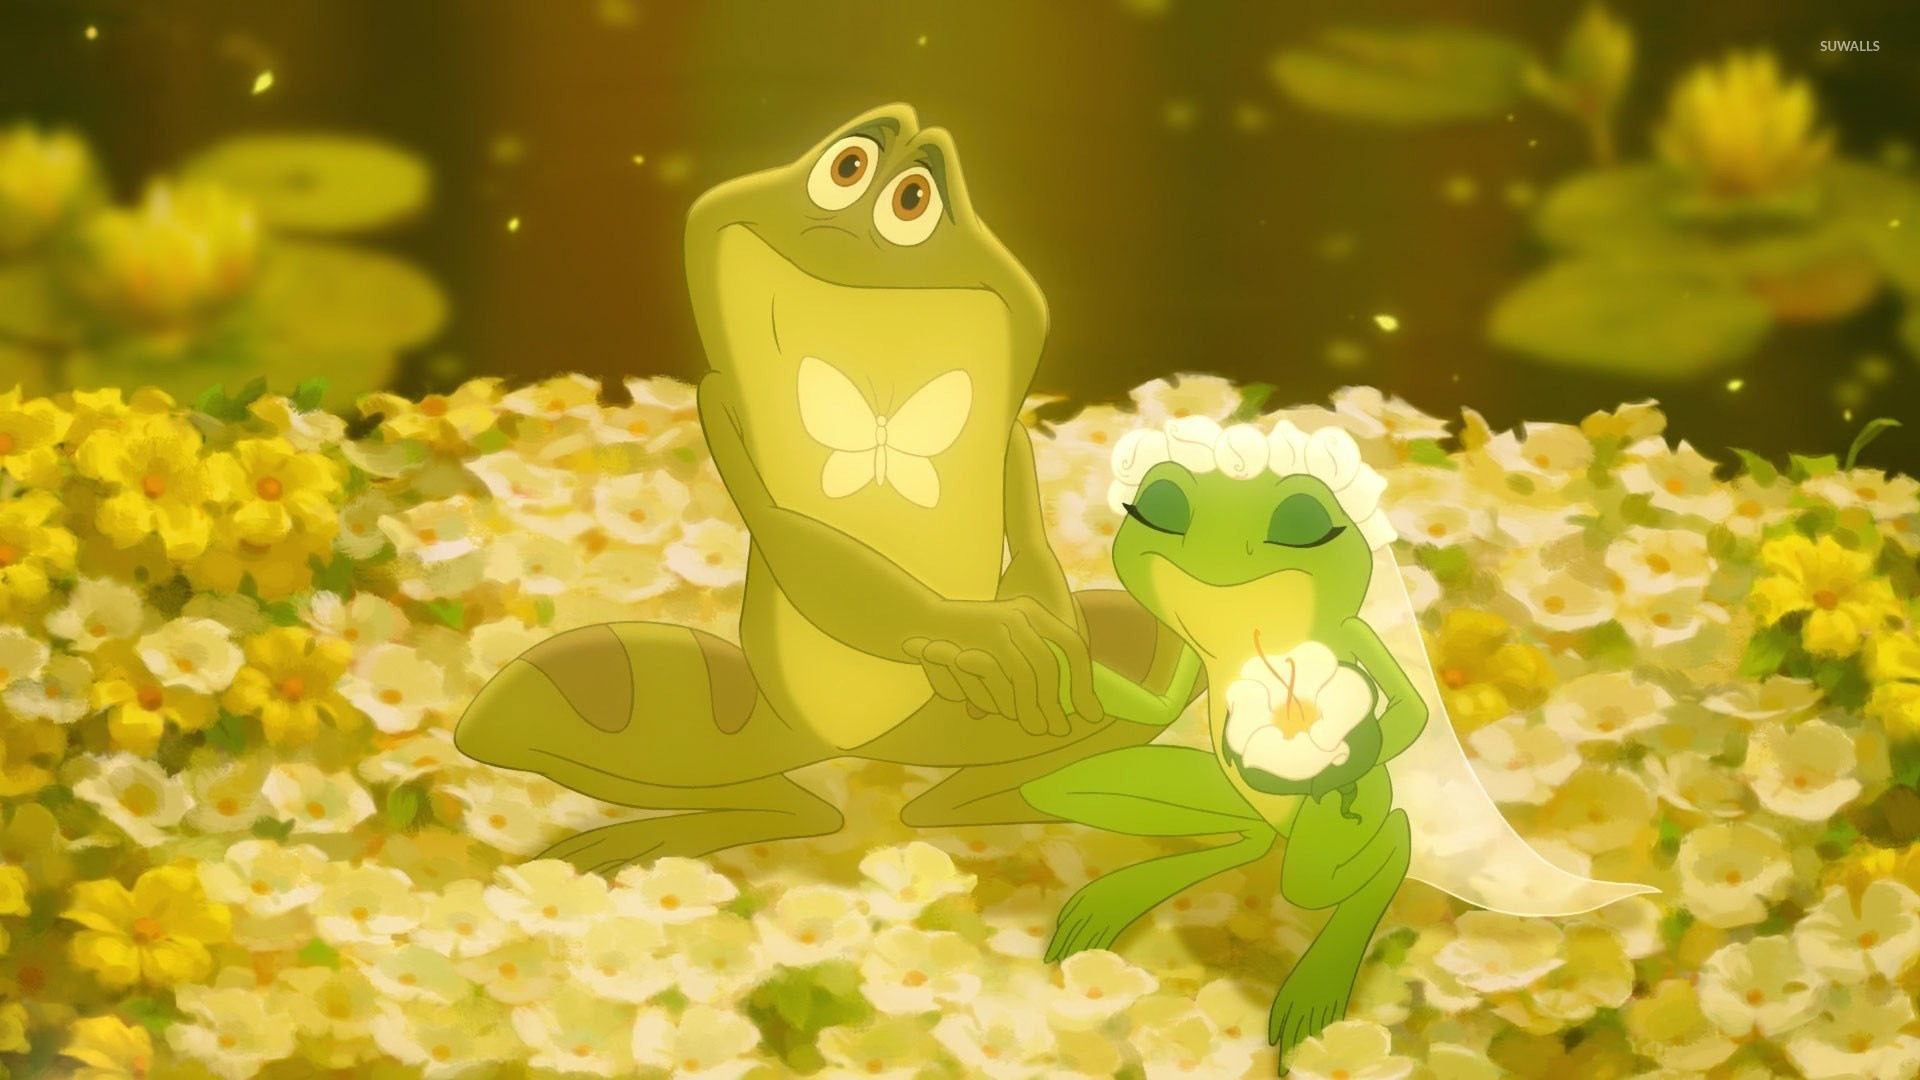 The Princess And The Frog 2 Wallpaper Cartoon Wallpapers 33134